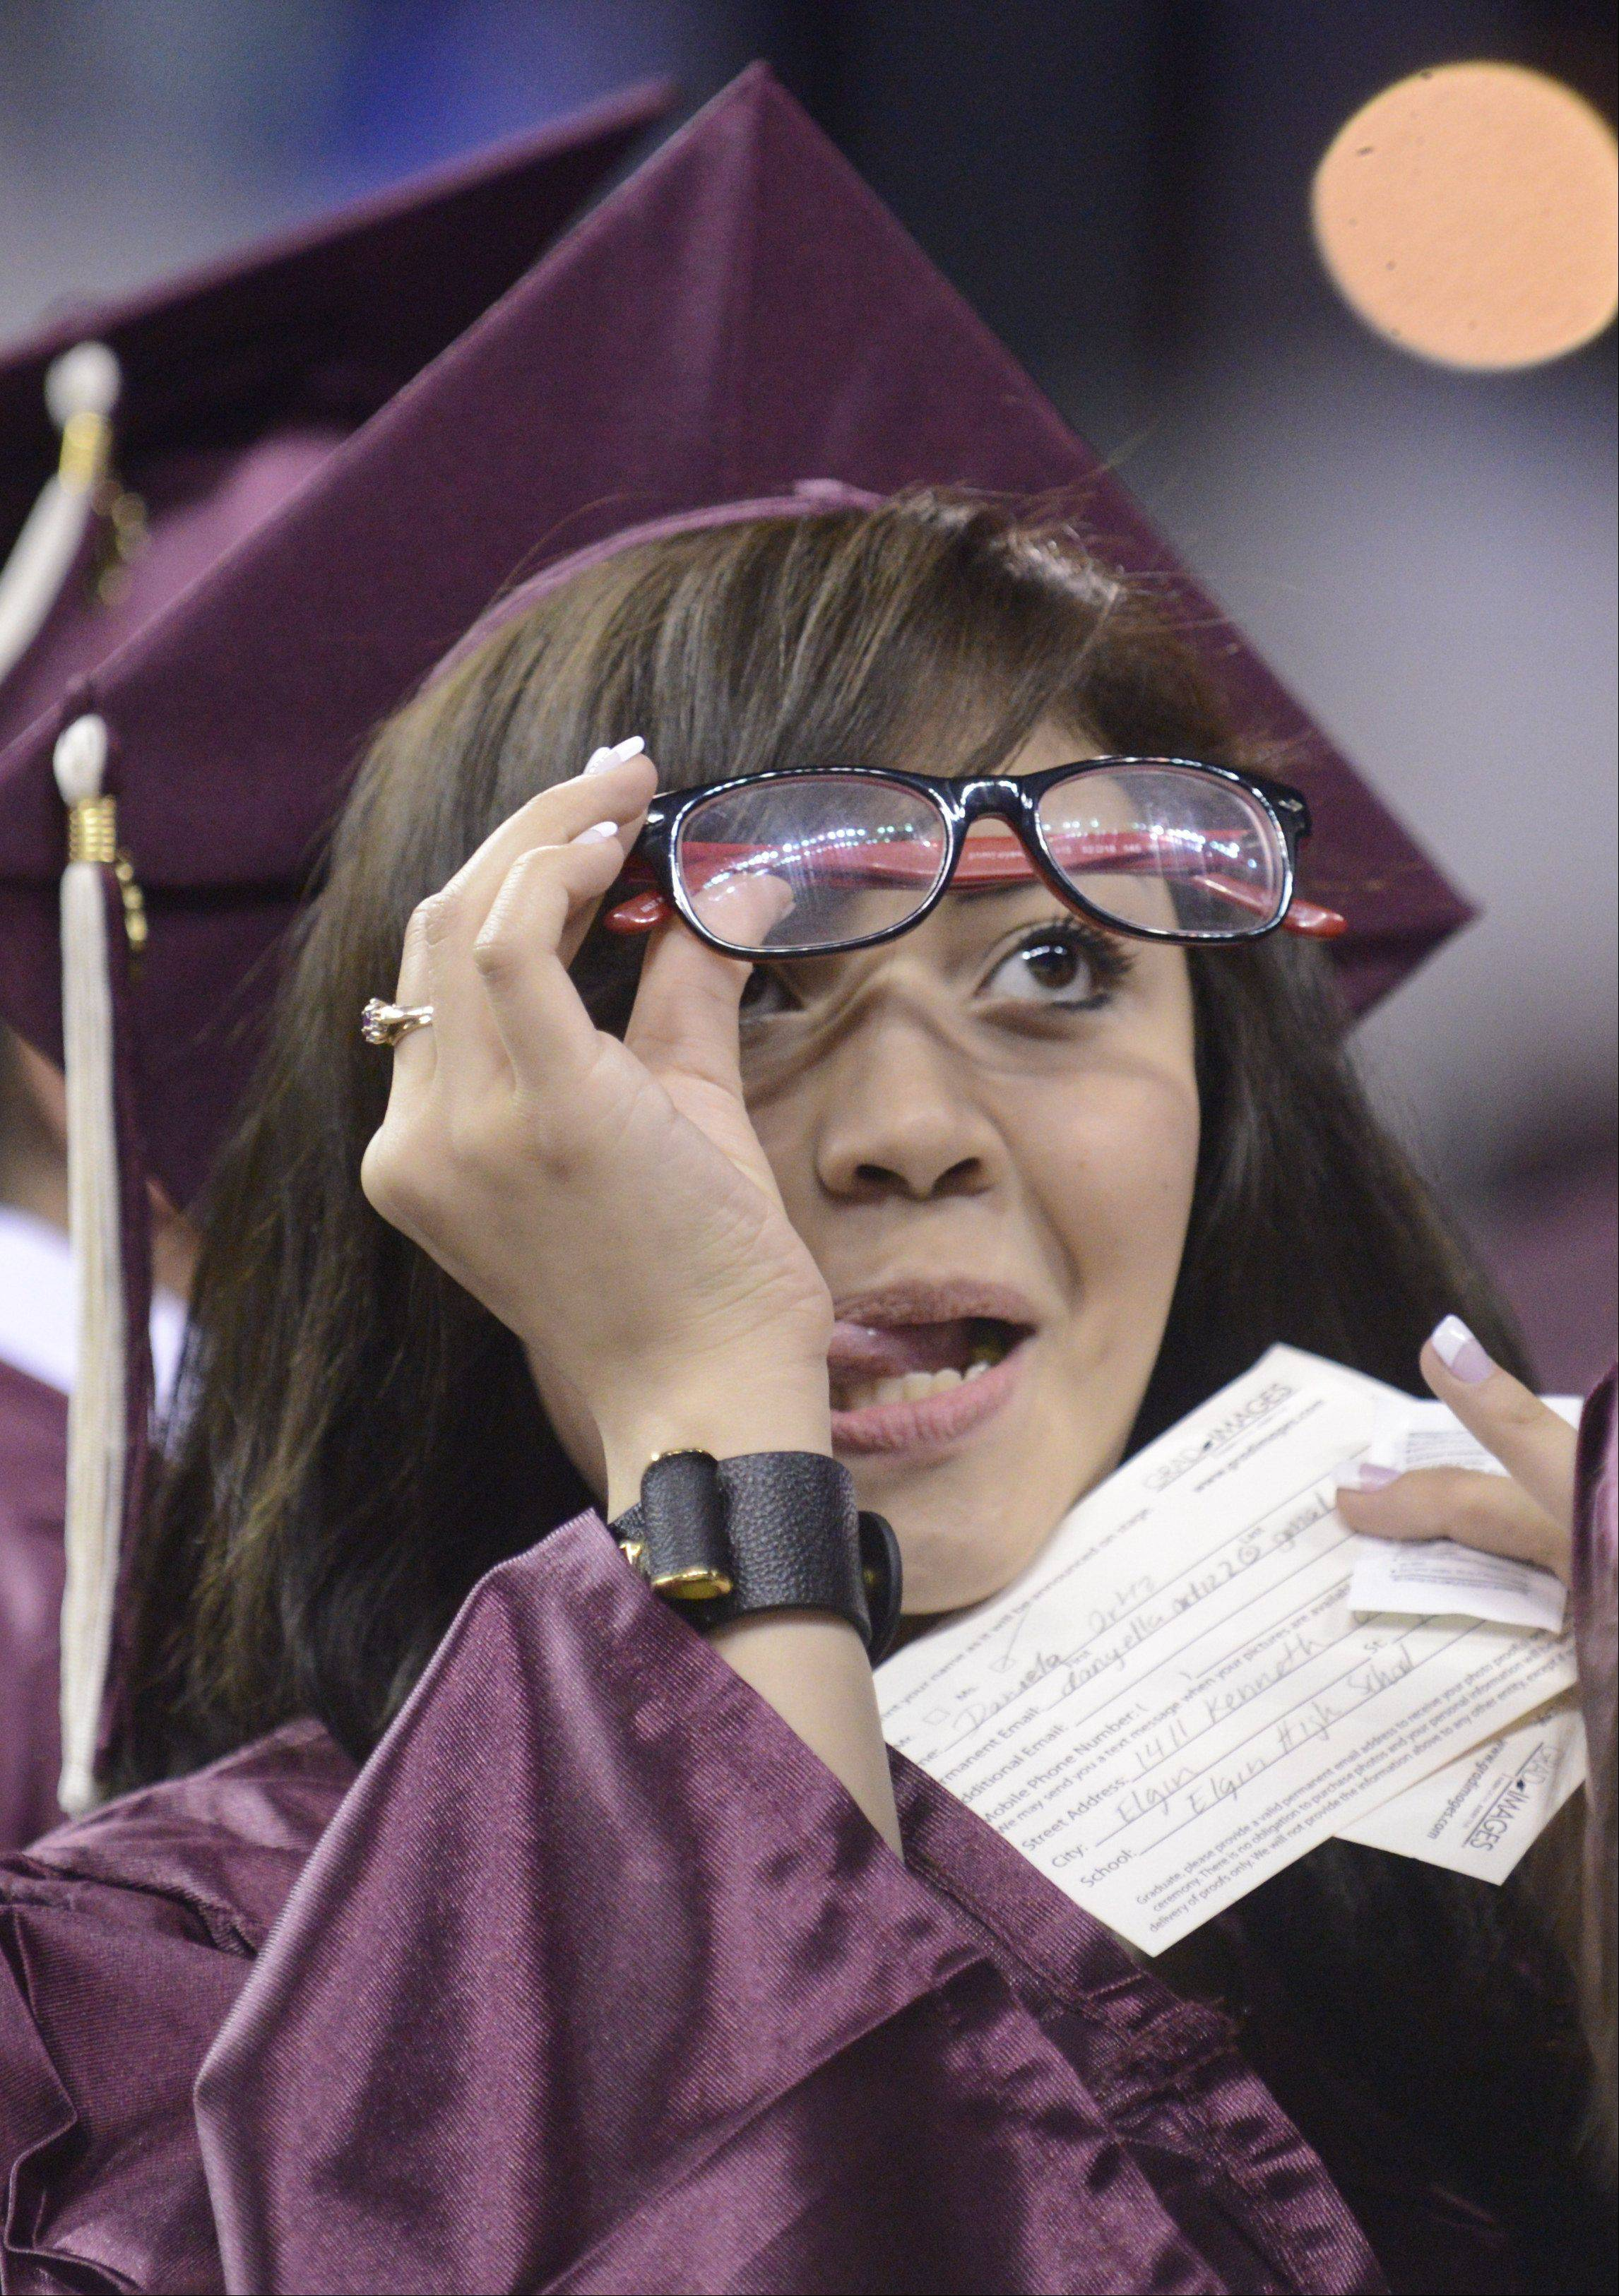 Images from the Elgin High School commencement ceremony Saturday, May 25, 2013 at the Sears Centre in Hoffman Estates.